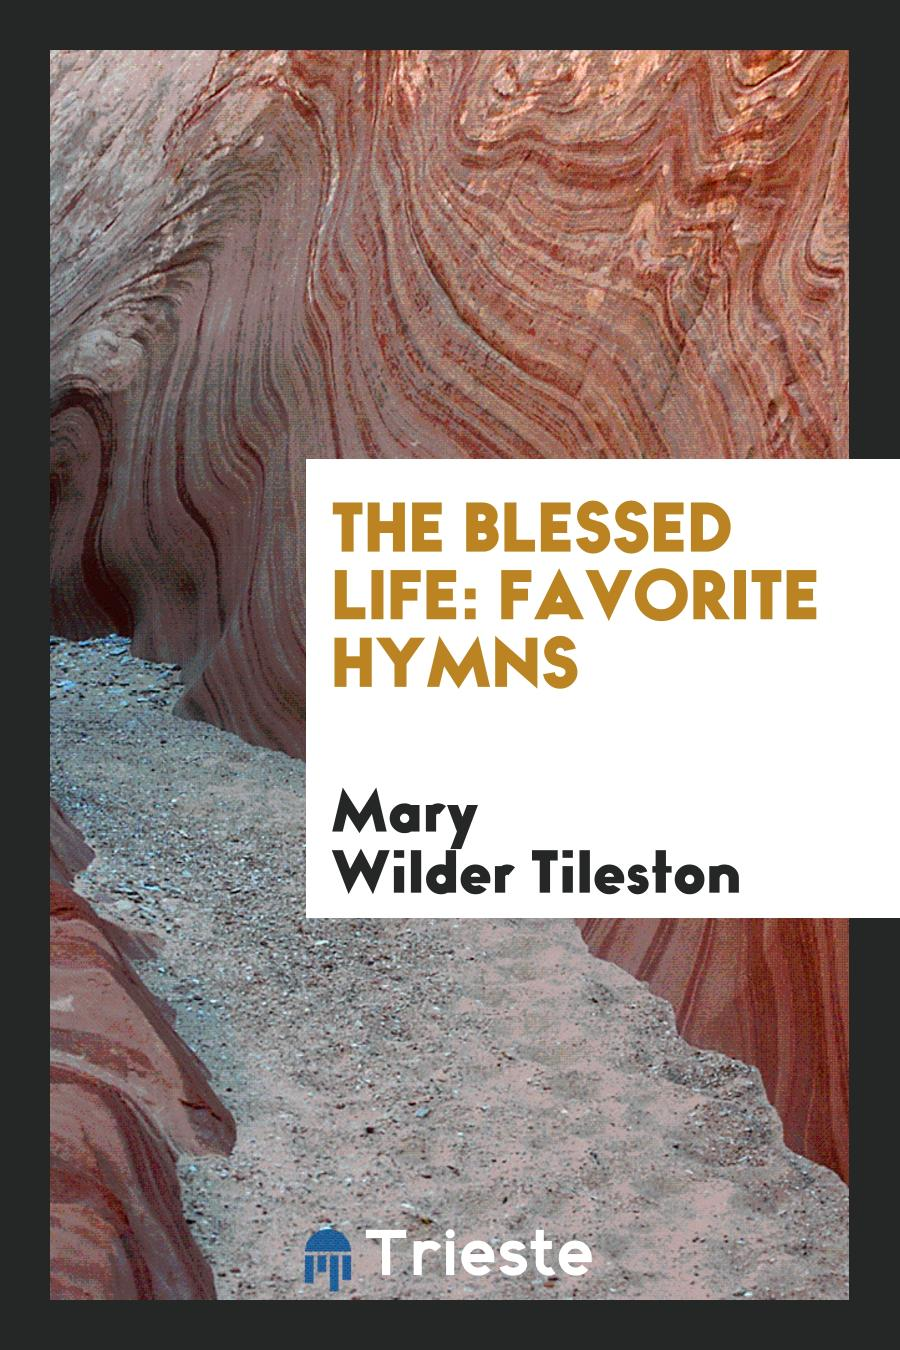 The Blessed Life: Favorite Hymns